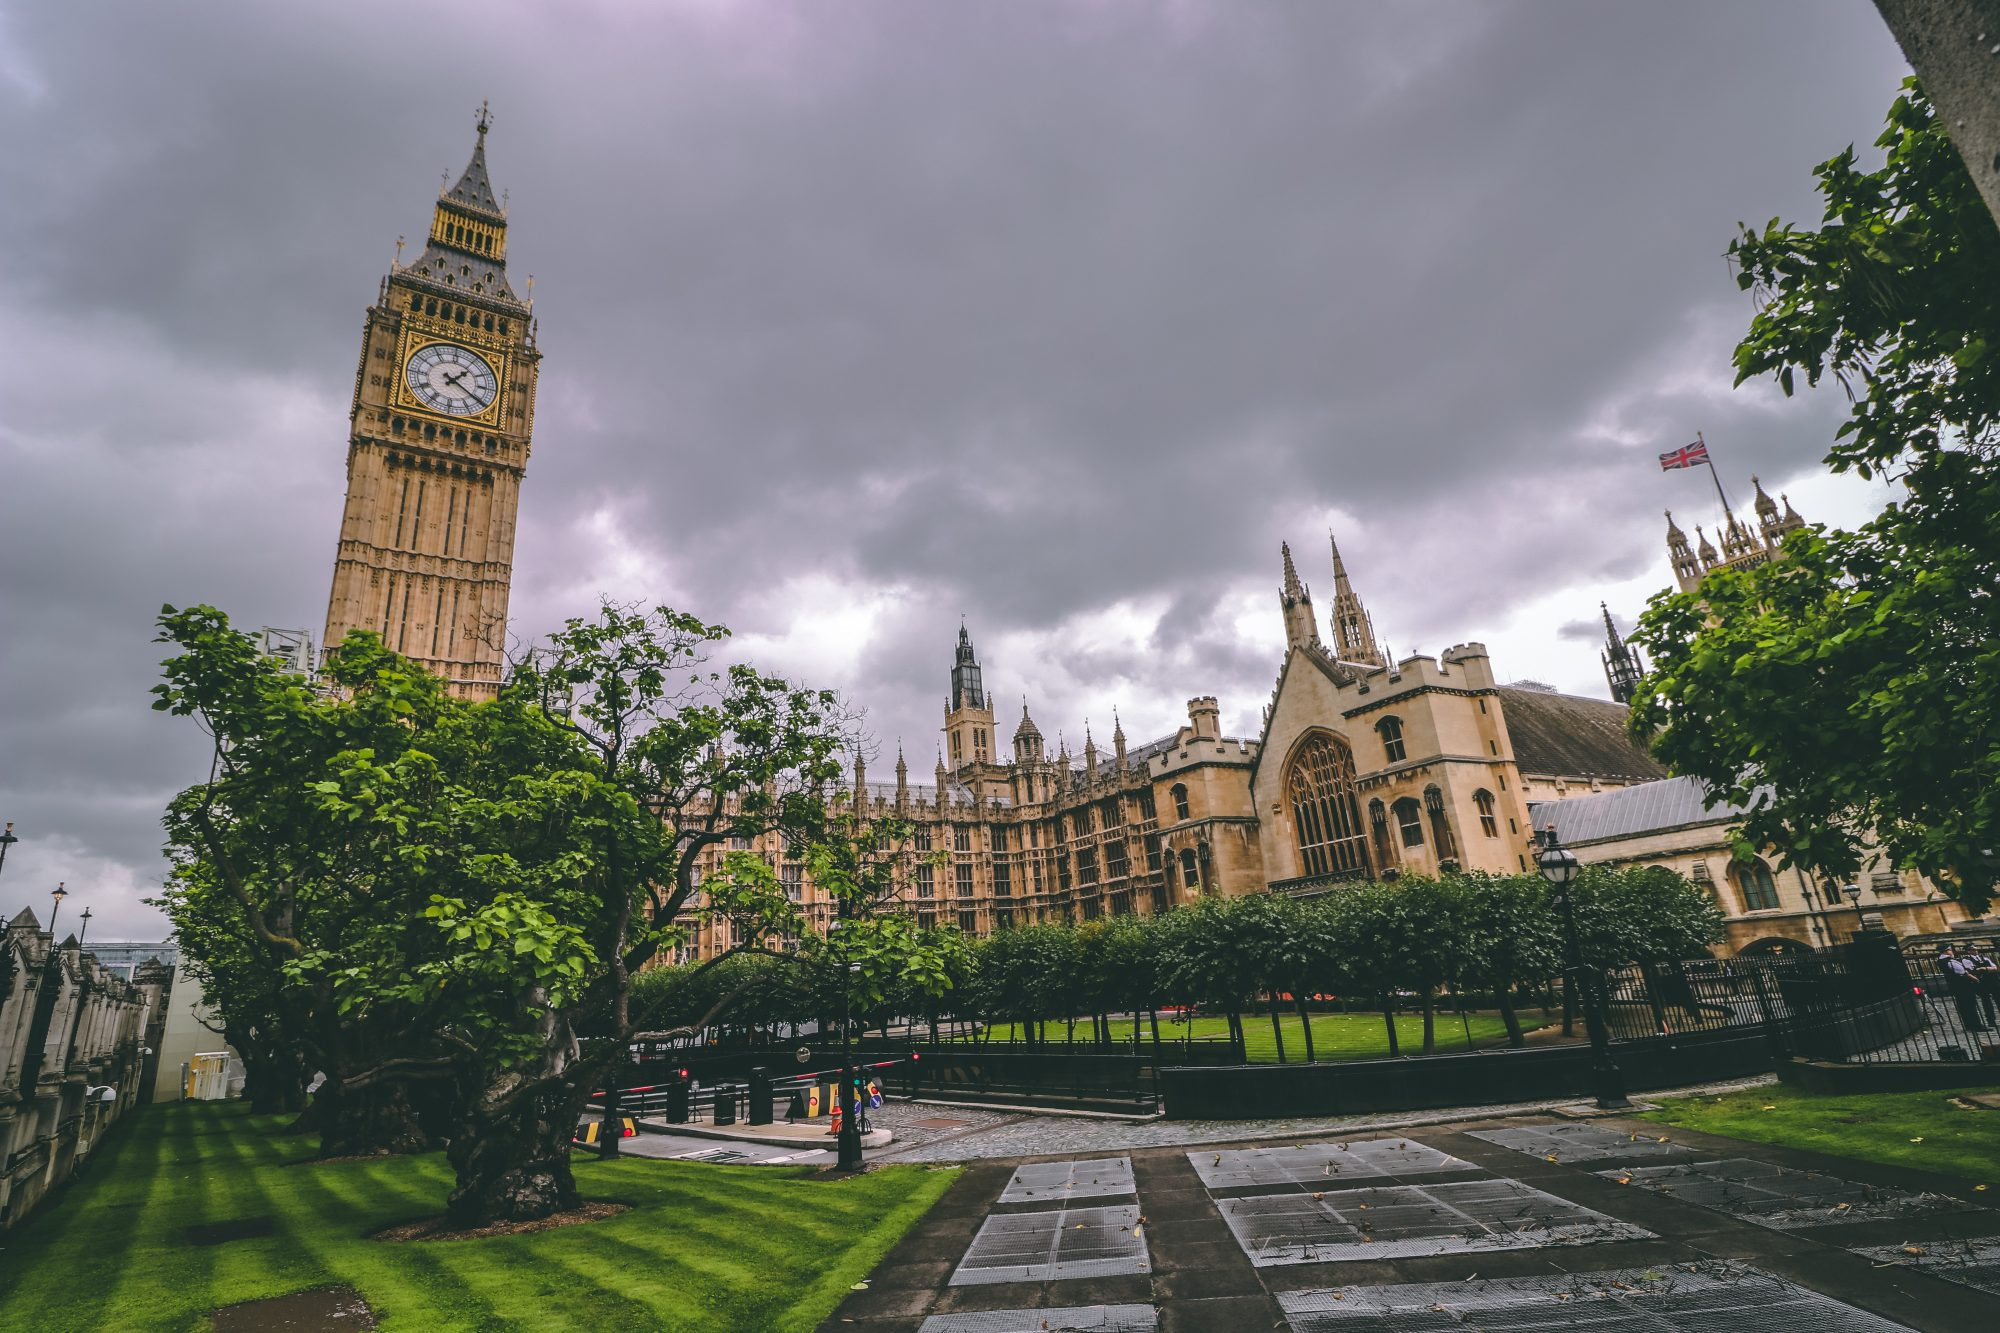 Westminster Abbey (London) - 2018 All You Need to Know